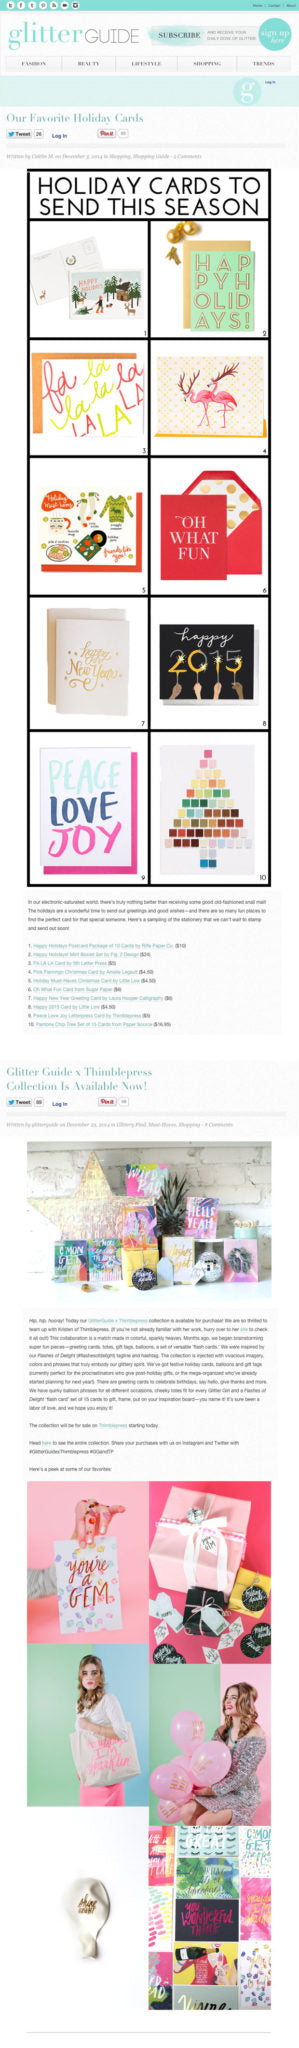 Glitter Guide | 2014 Features